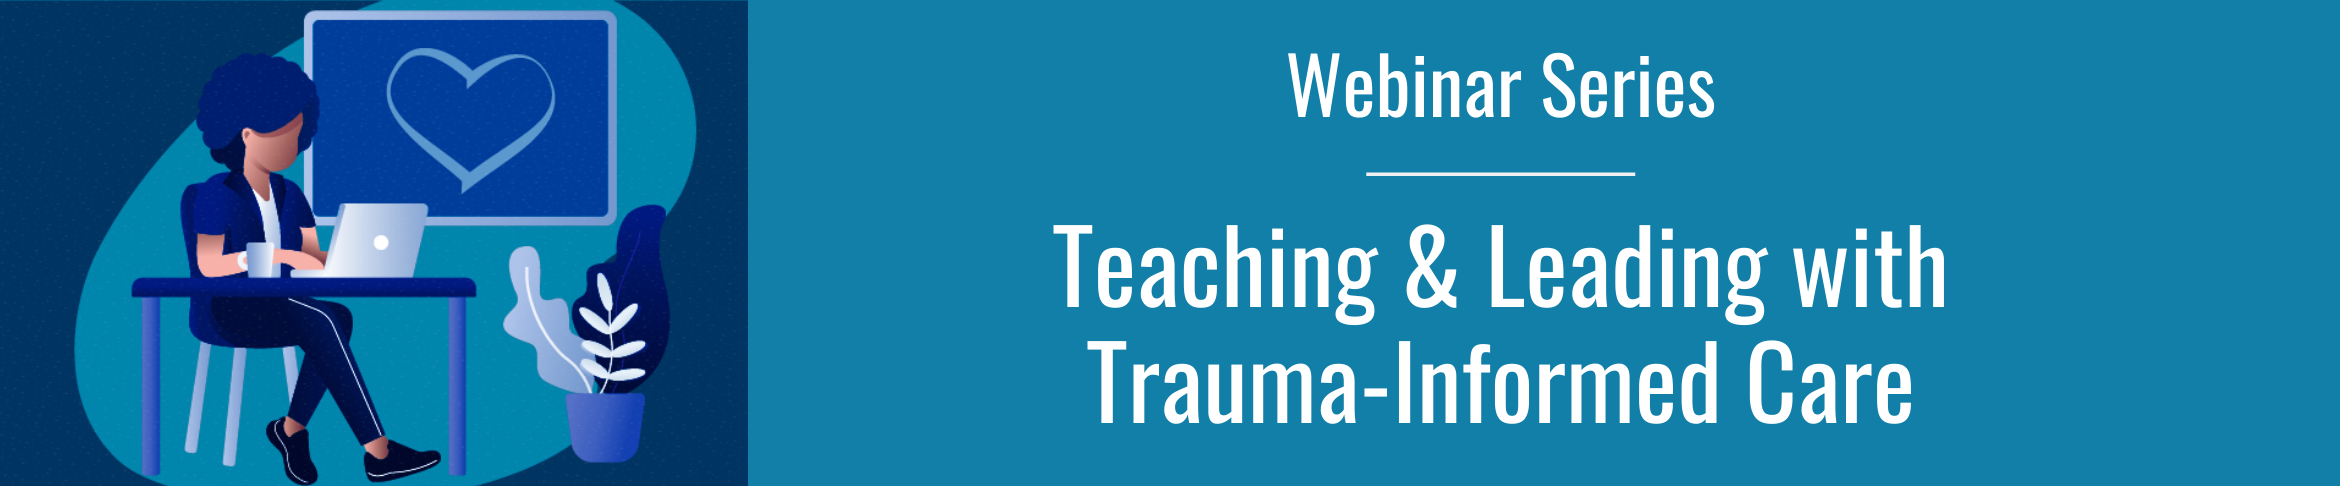 Teaching and Leading with Trauma-Informed Care Webinar Series